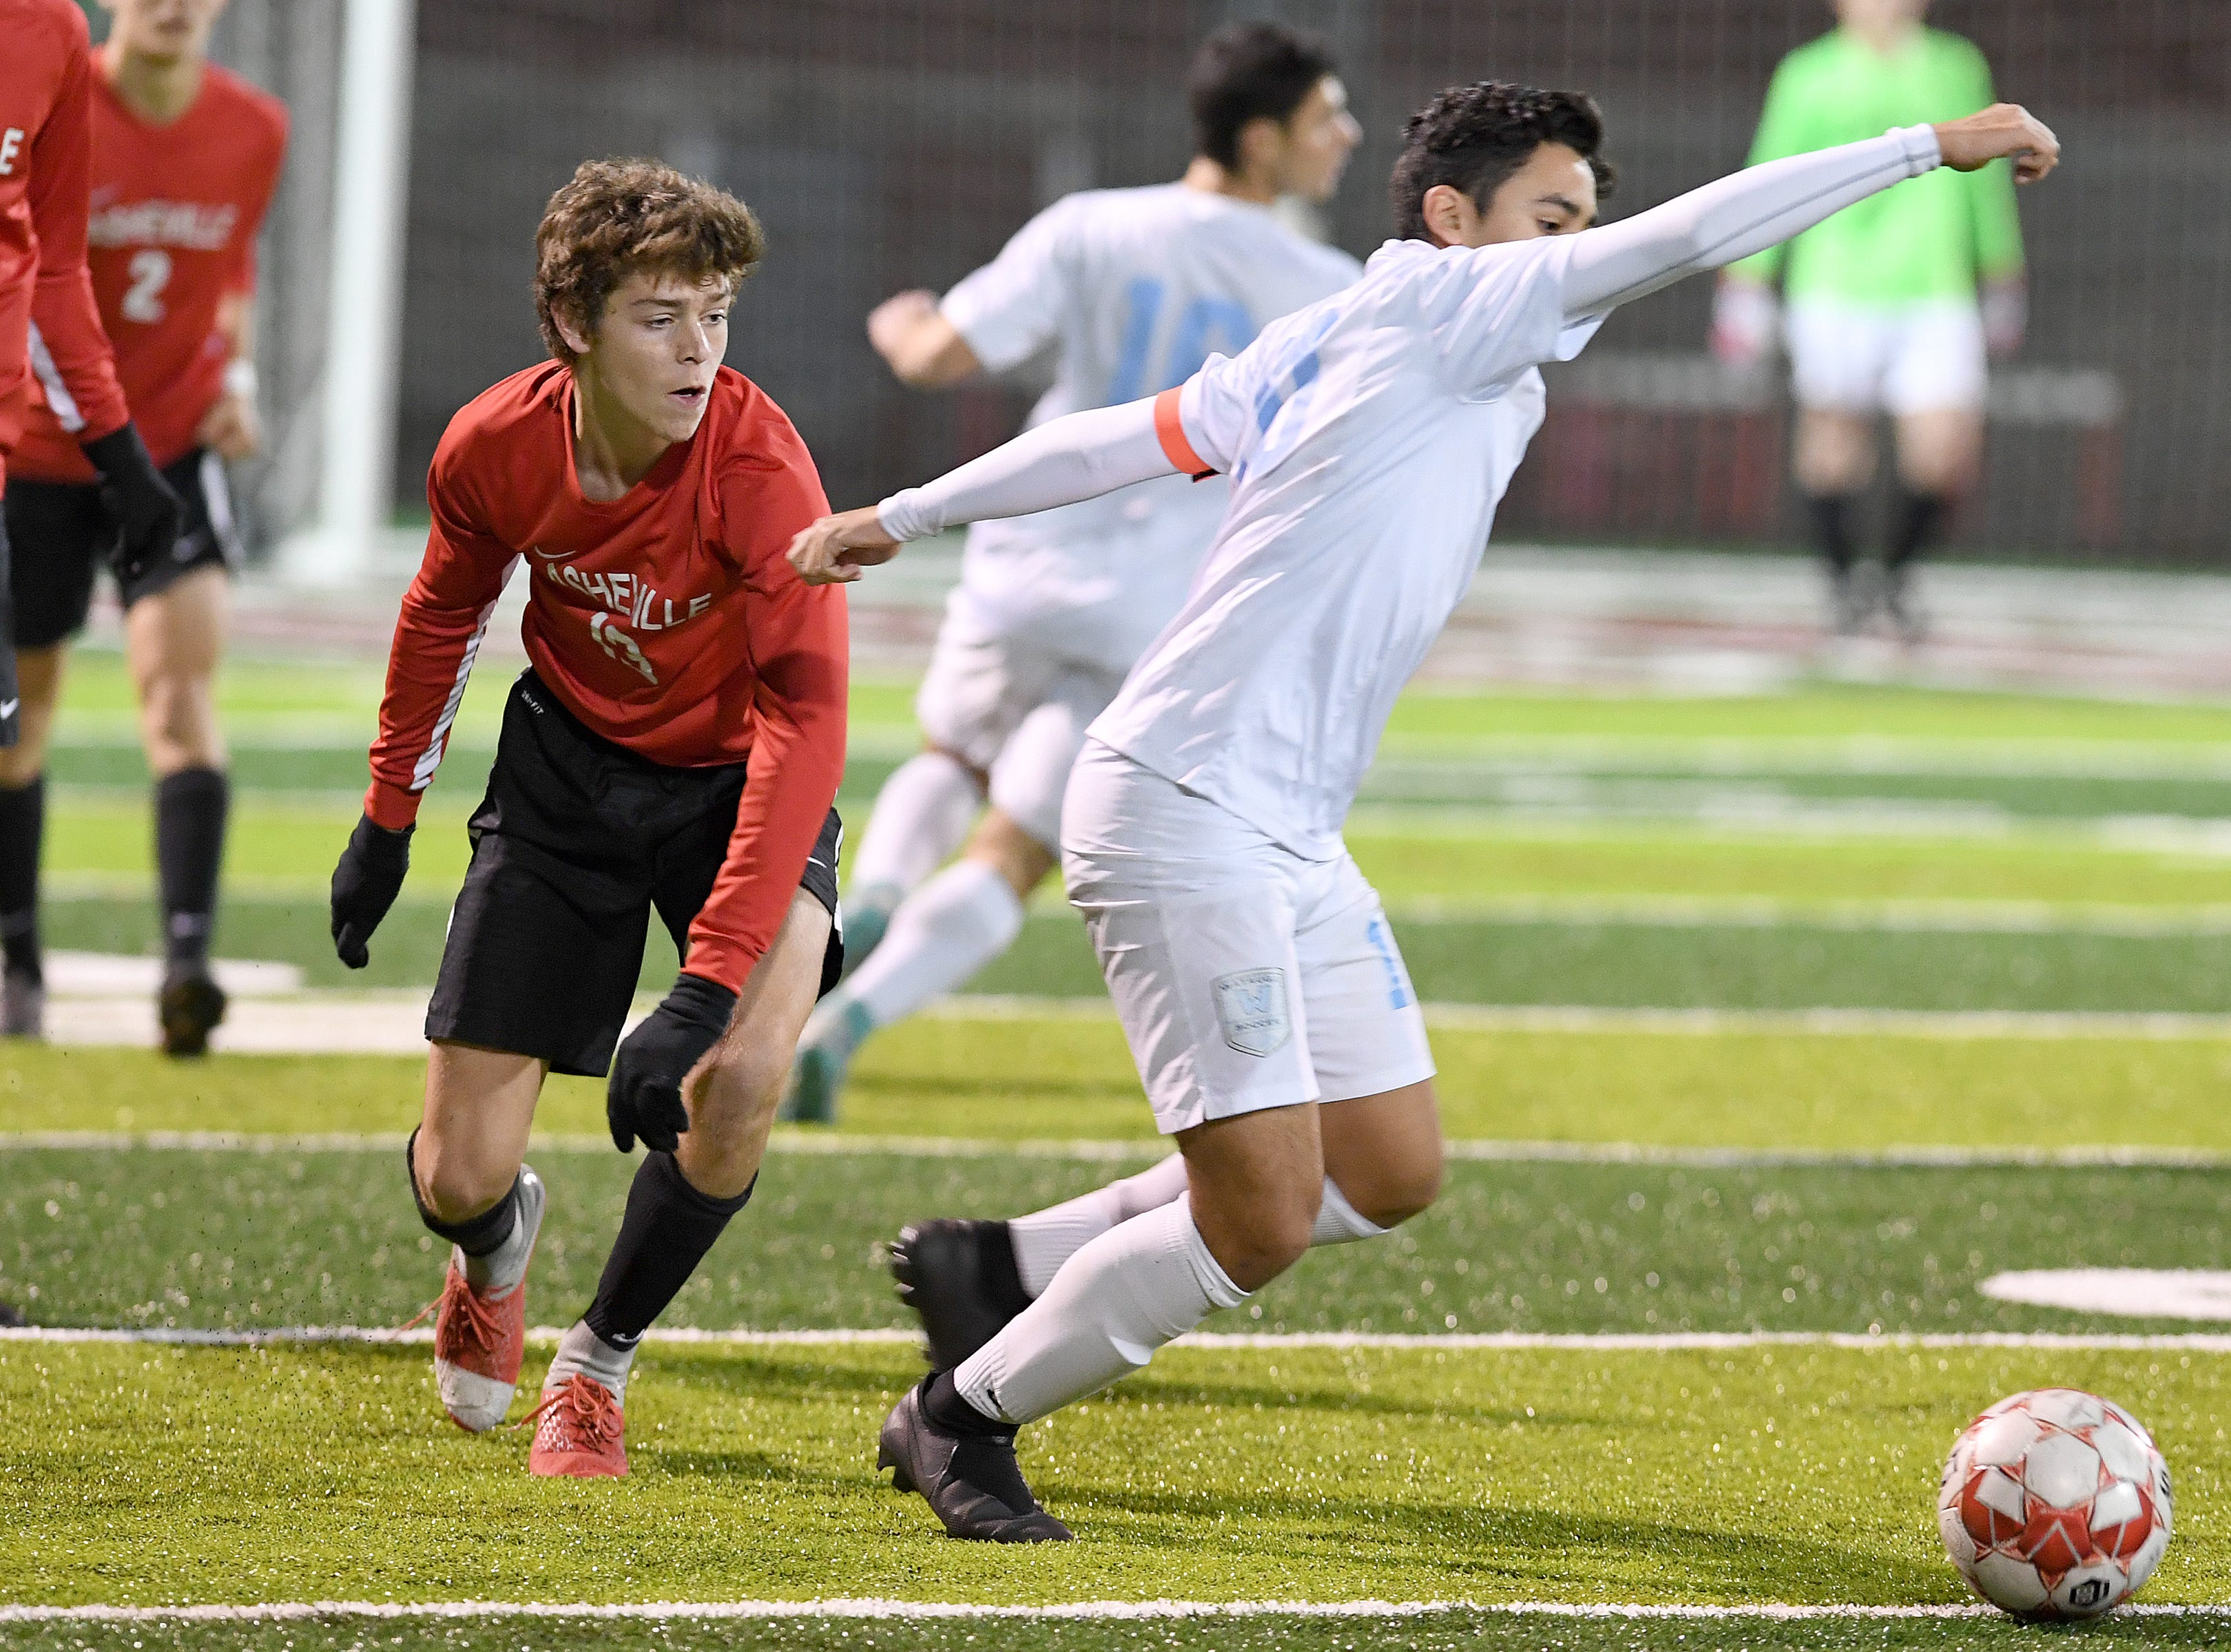 Asheville defeated Watauga 1-0 in their playoff game at Asheville High School on Nov. 8, 2018.